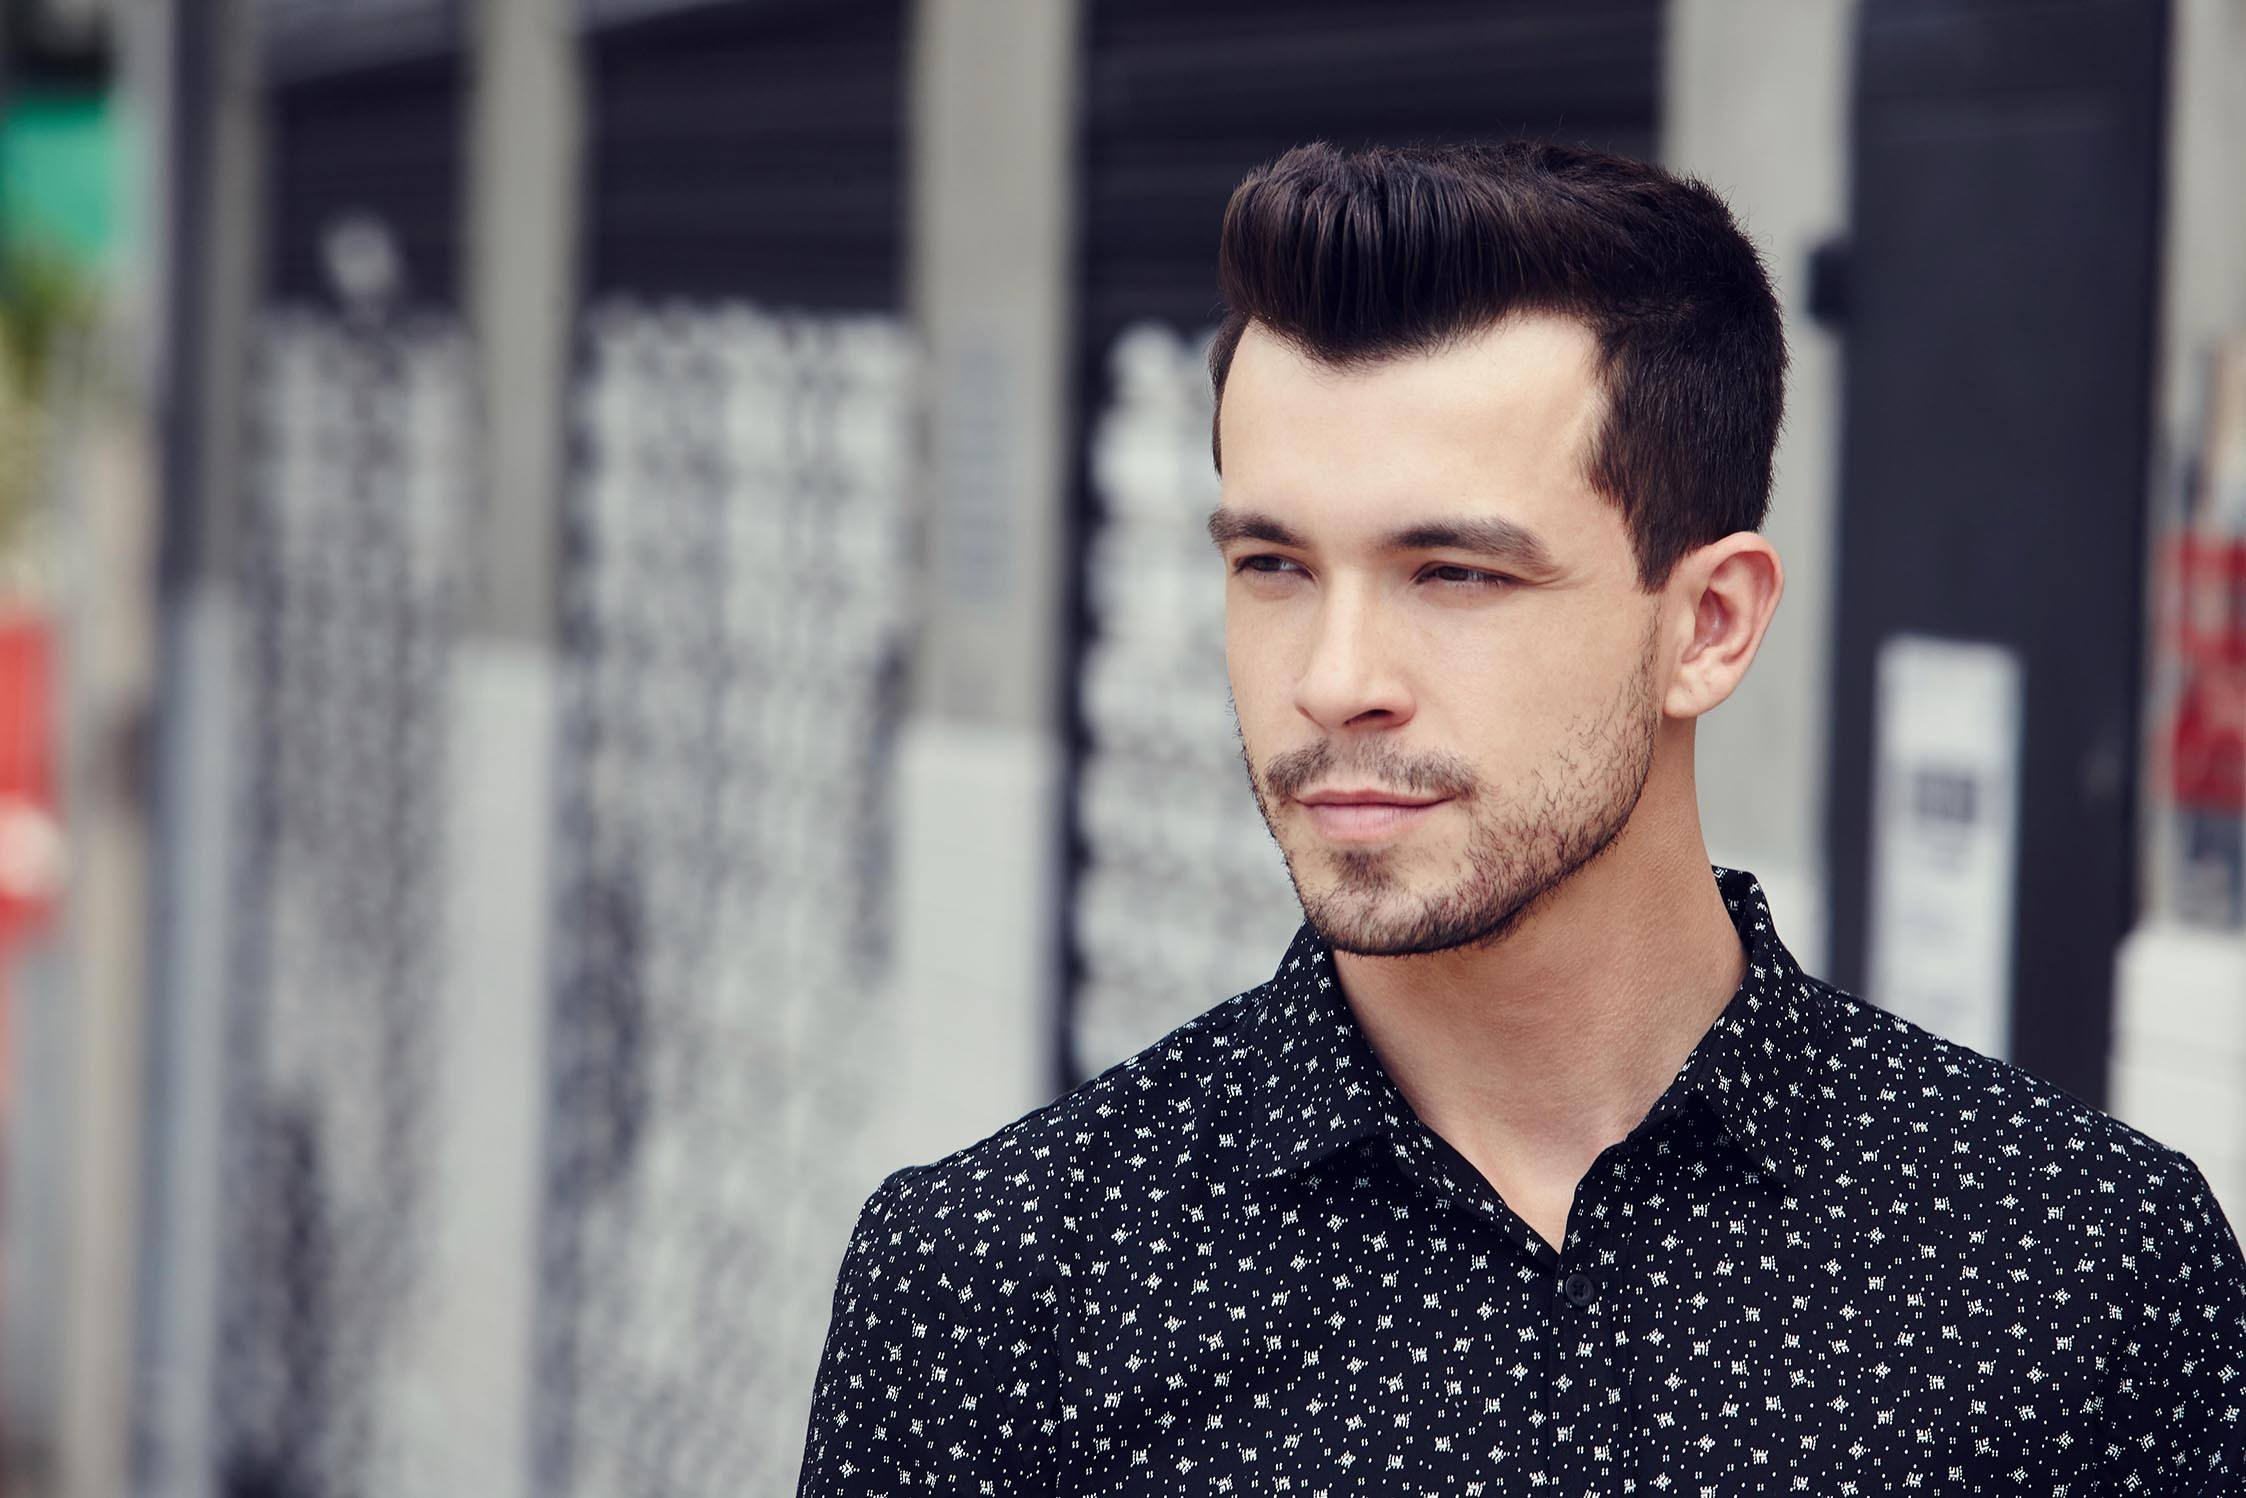 Short hairstyles 2016: All Things Hair - IMAGE - textured quiff popular men style